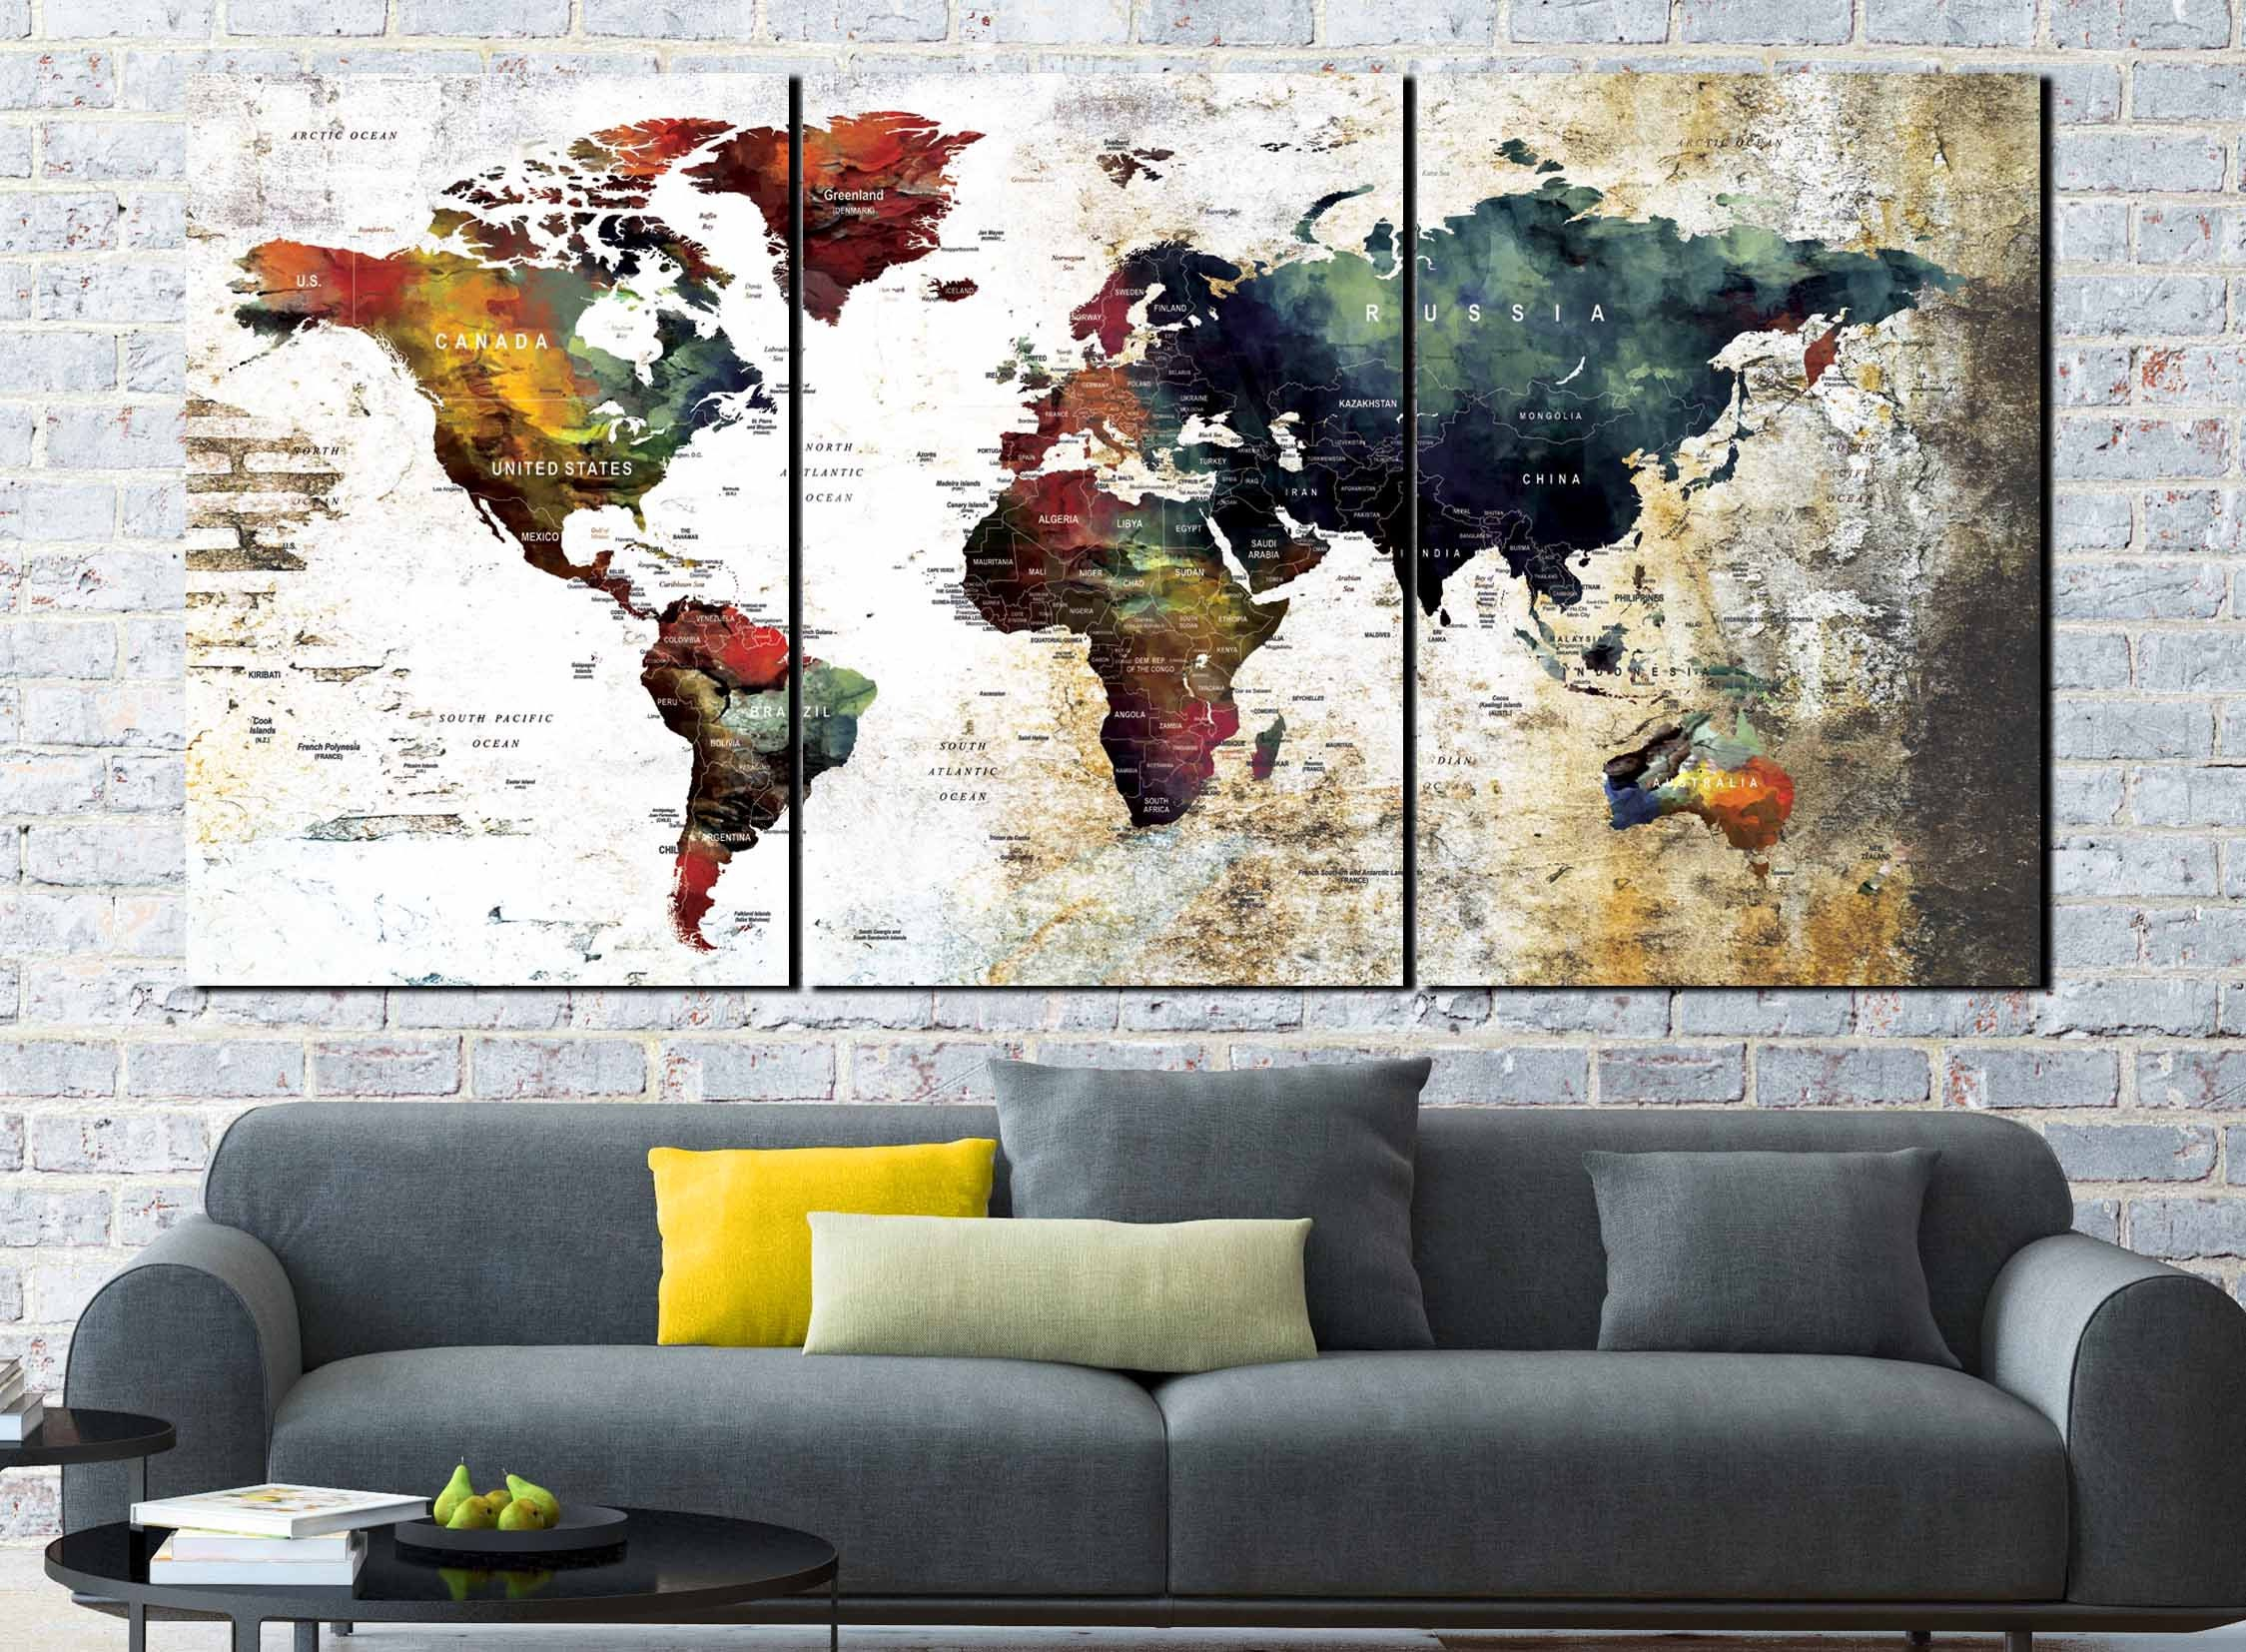 World map abstractworld map wall artworld map artworld map canvas world map abstractworld map wall artworld map artworld map canvasmap artworld map canvas artworld map vintageliving room map artmap gumiabroncs Choice Image